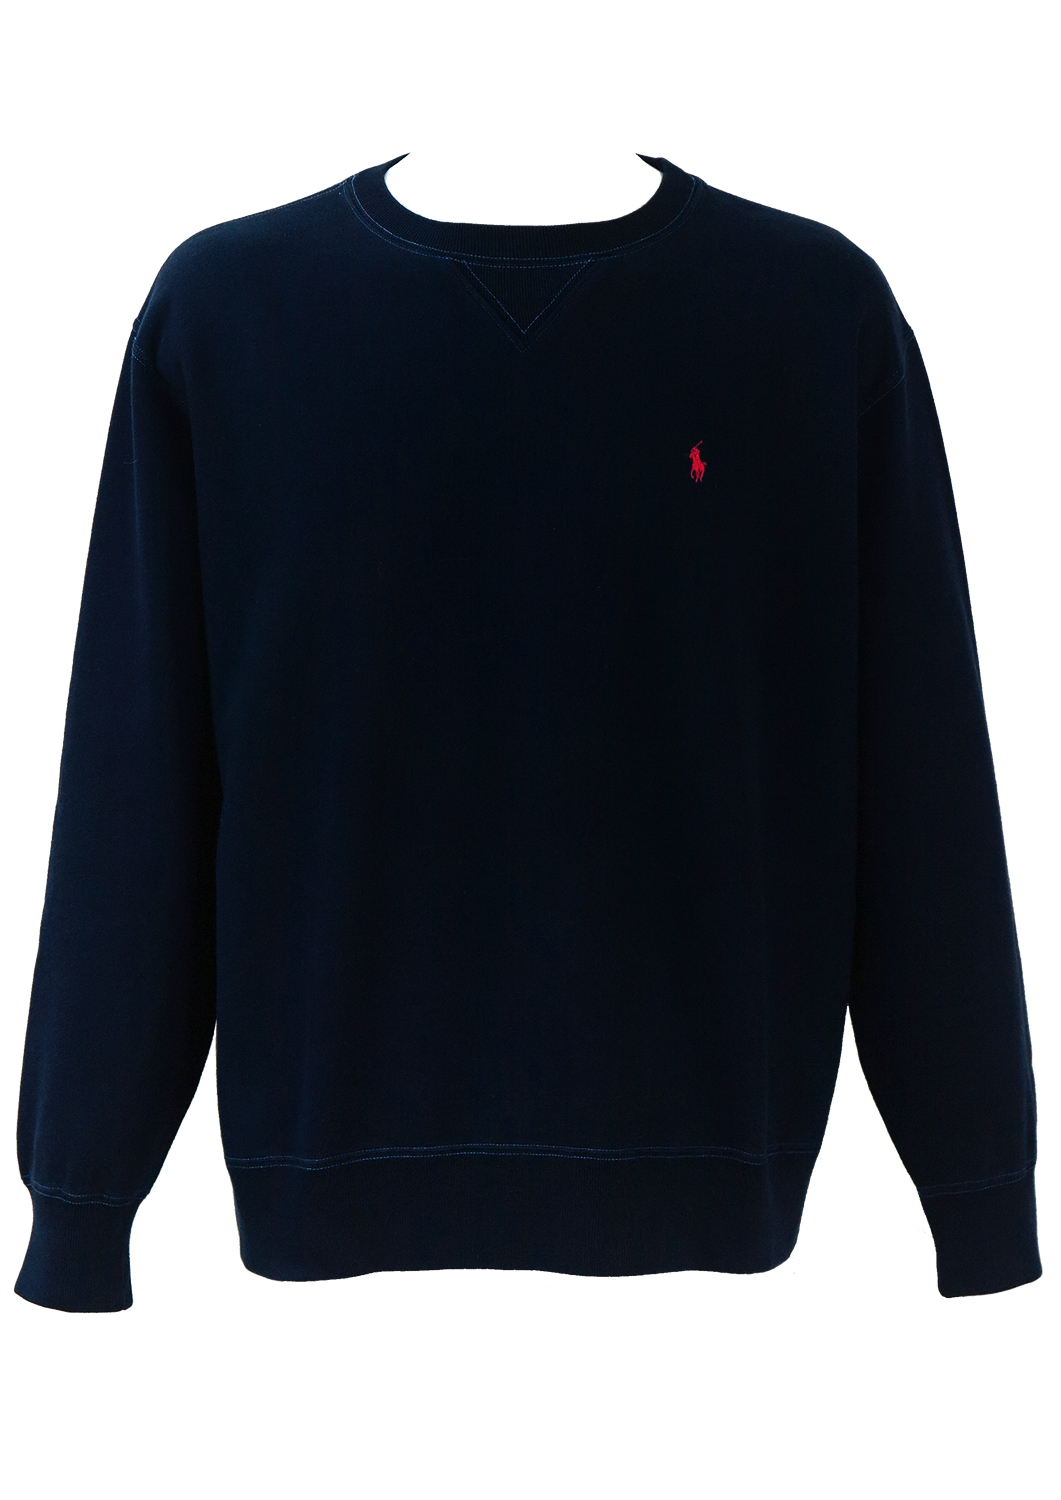 33482c89e56a2 Ralph Lauren Polo Sport Navy Blue Sweatshirt with Stitching Detail - XL XXL